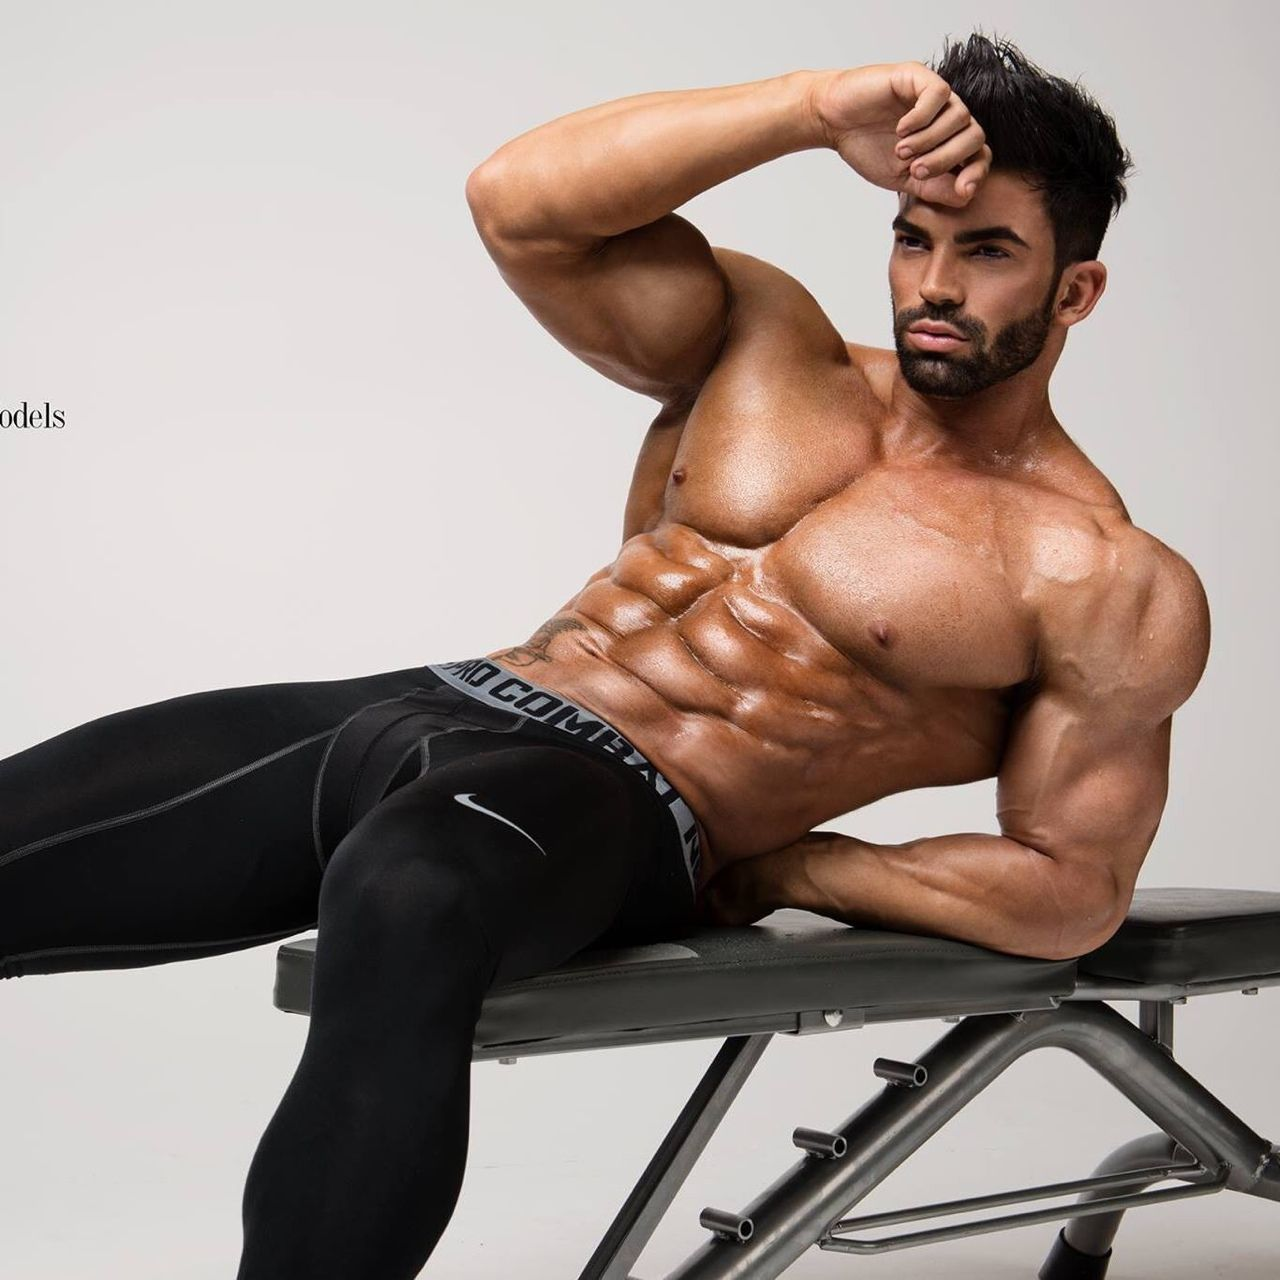 Sergi Constance Ripped body, Fitness motivation pictures